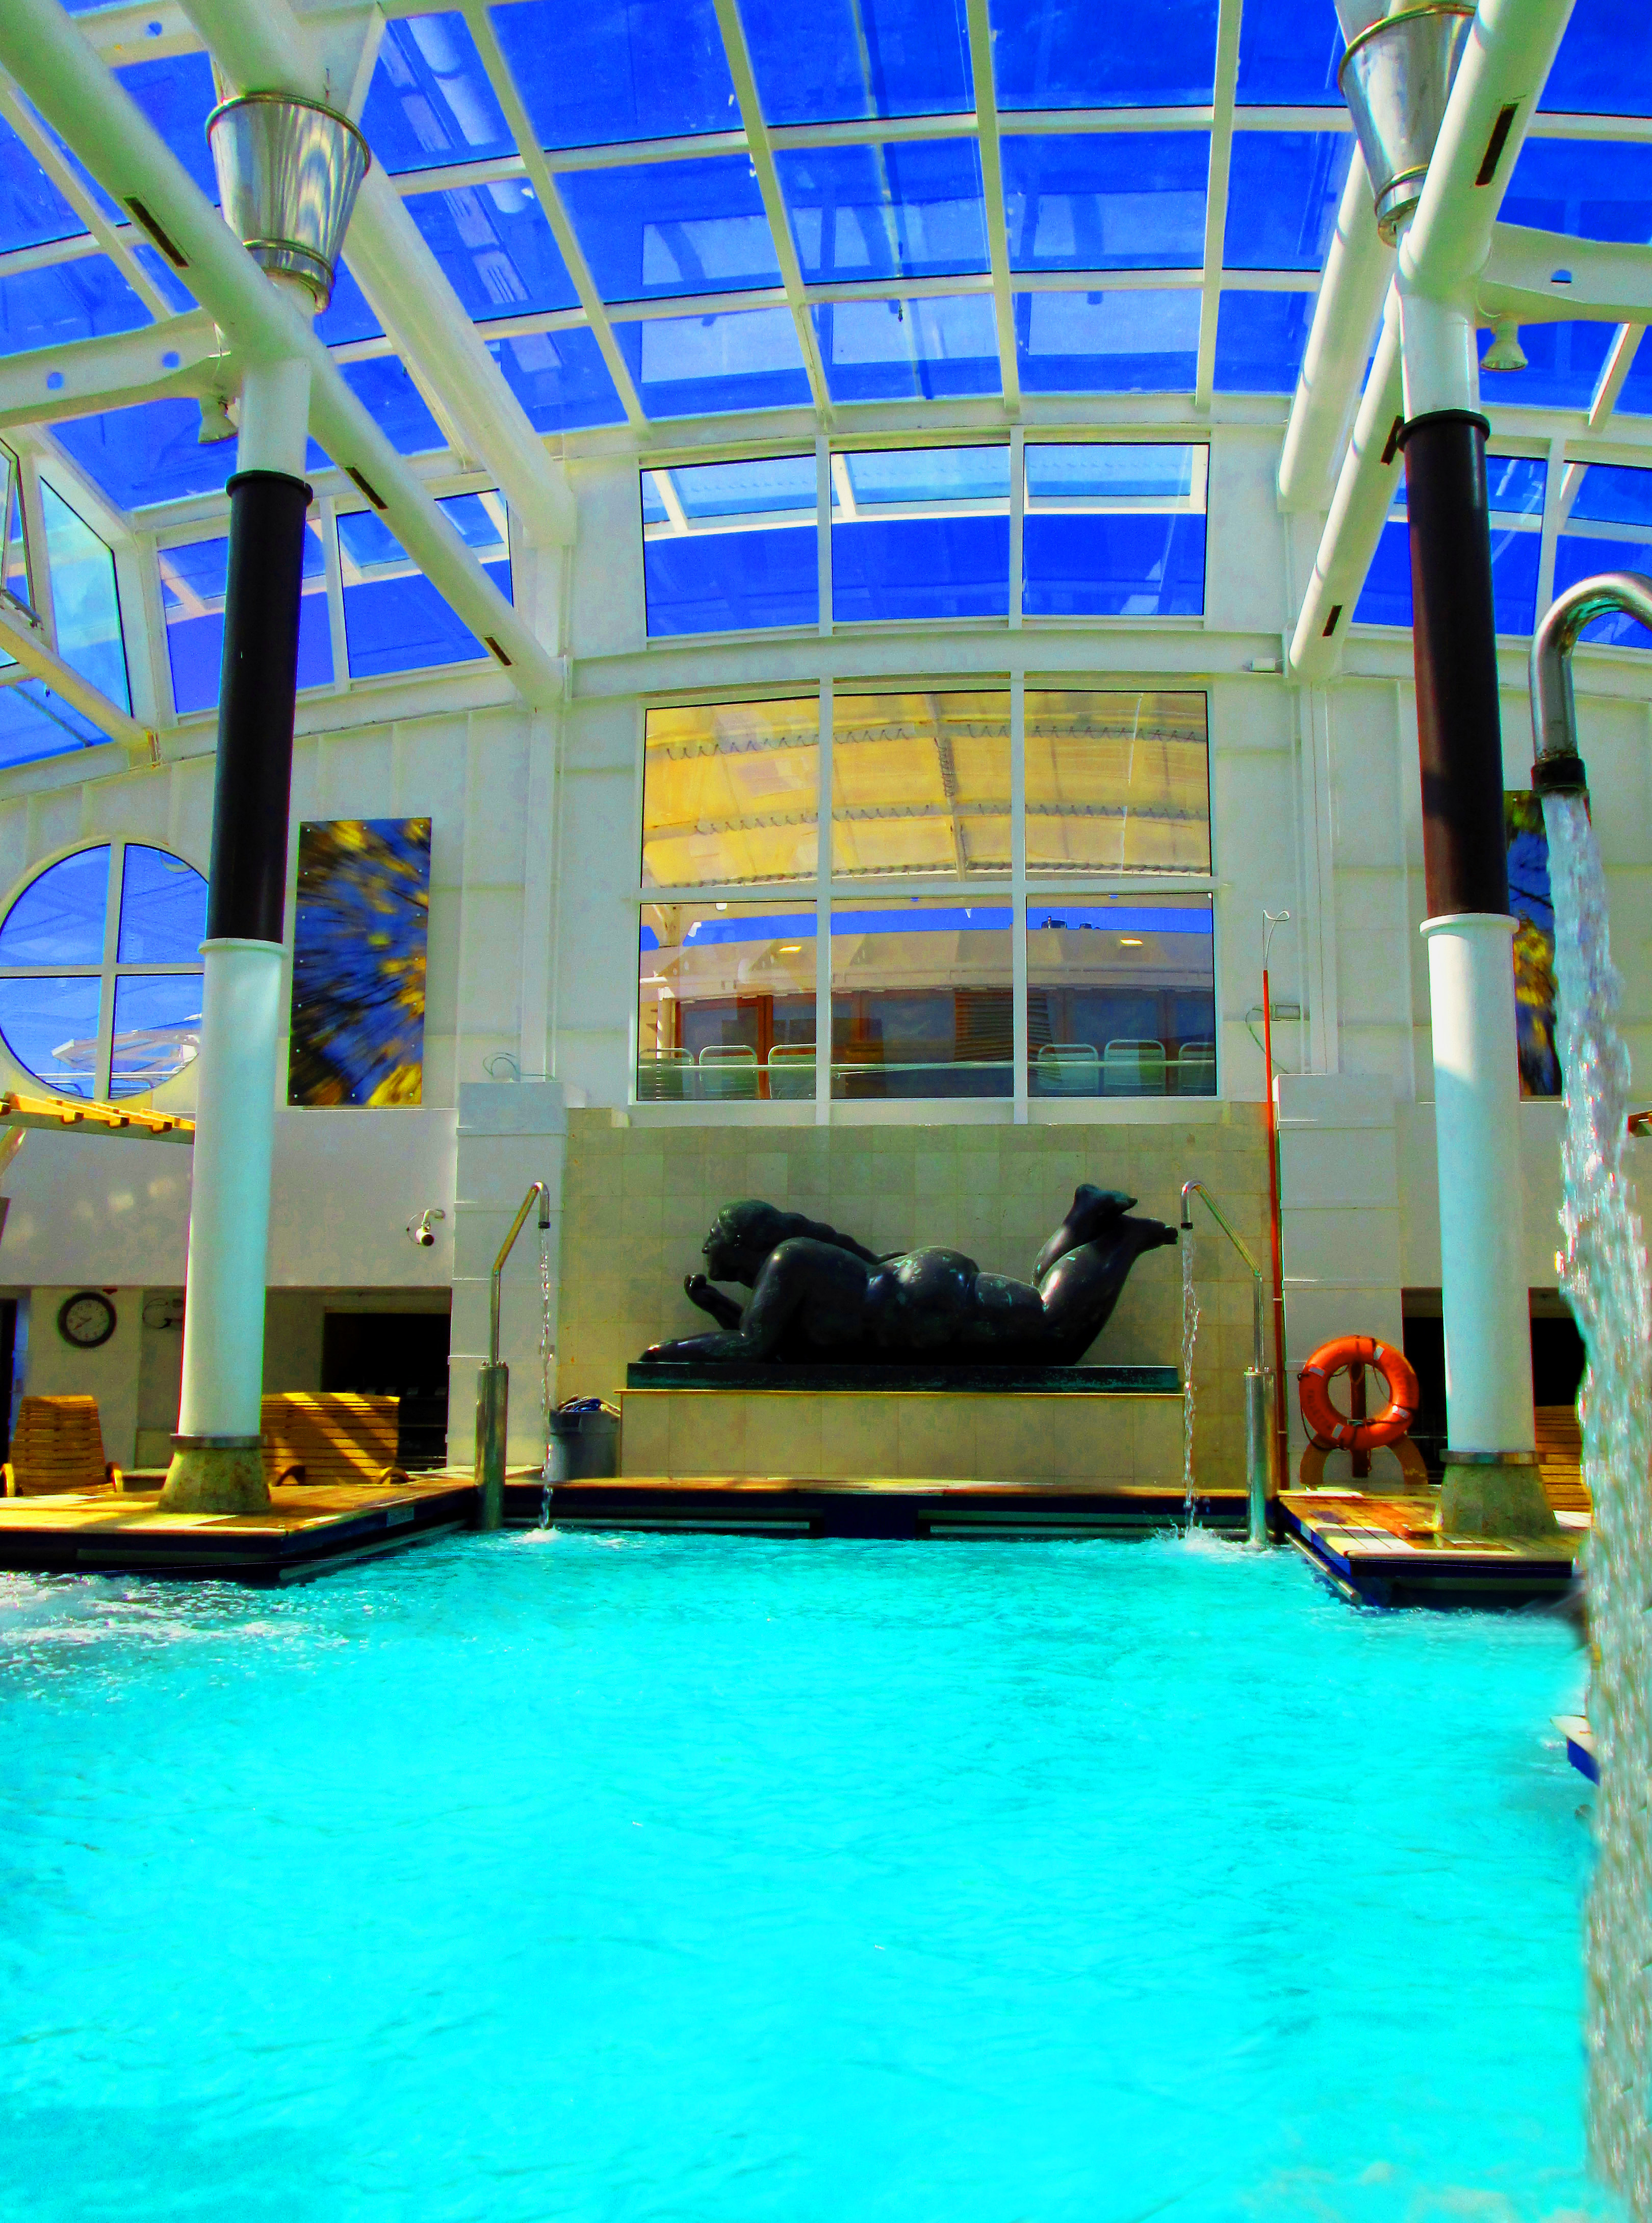 Thalassium Spa Pool On Celebrity Summit Cruise Ship